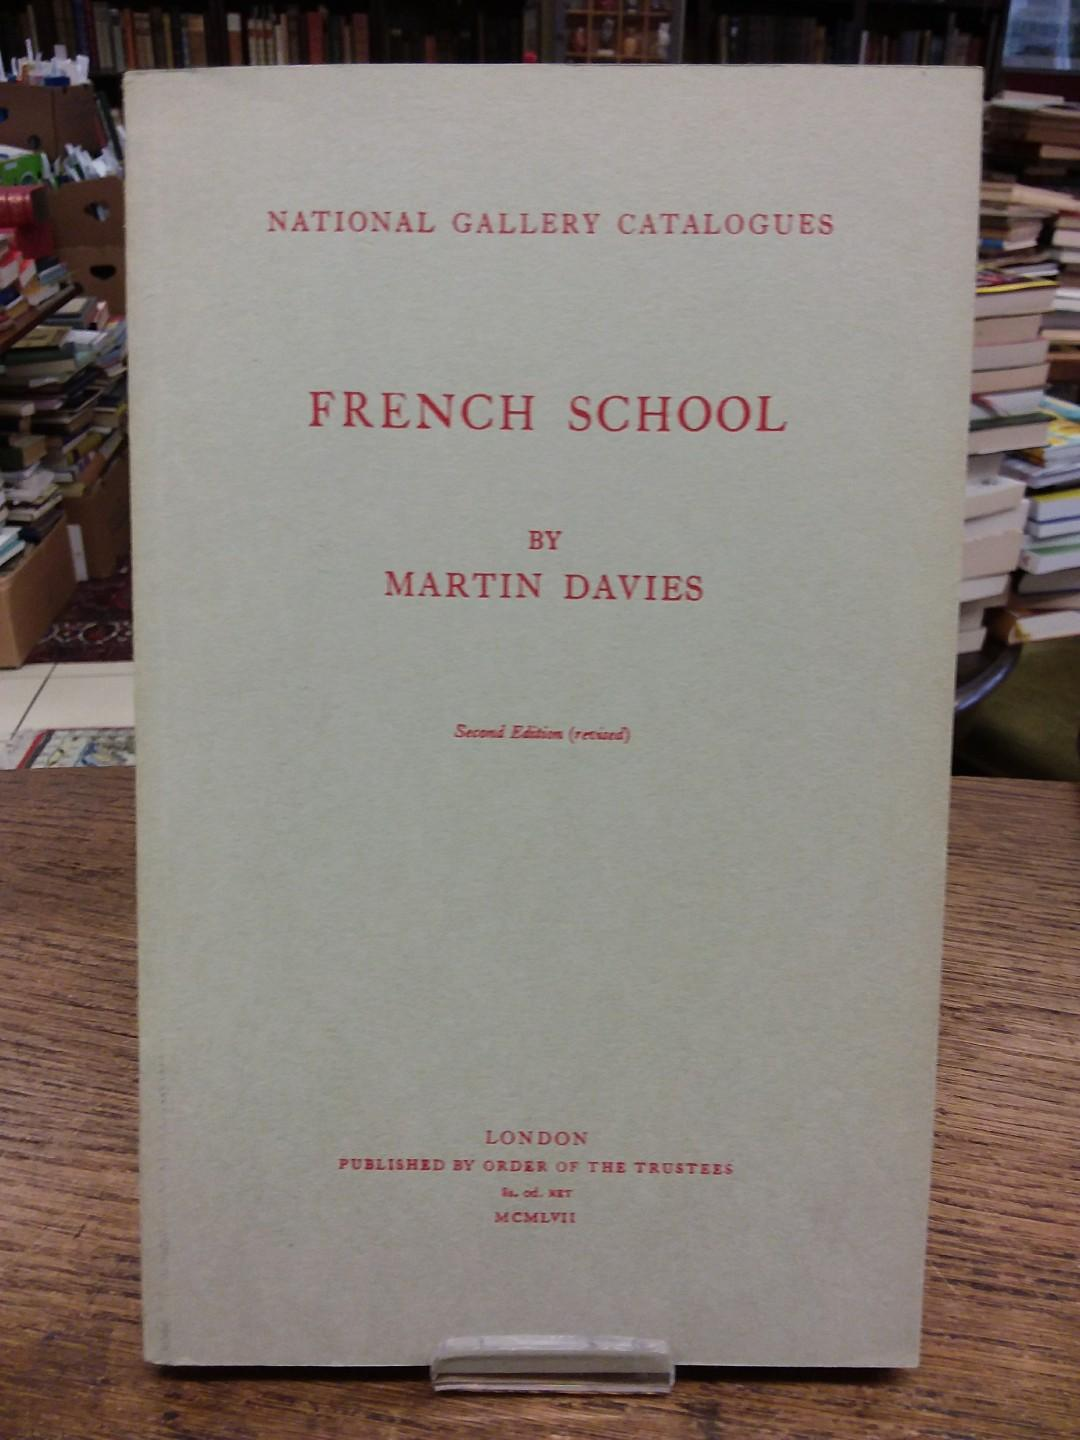 French School. National Gallery Catalogues.: Davies, Martin: